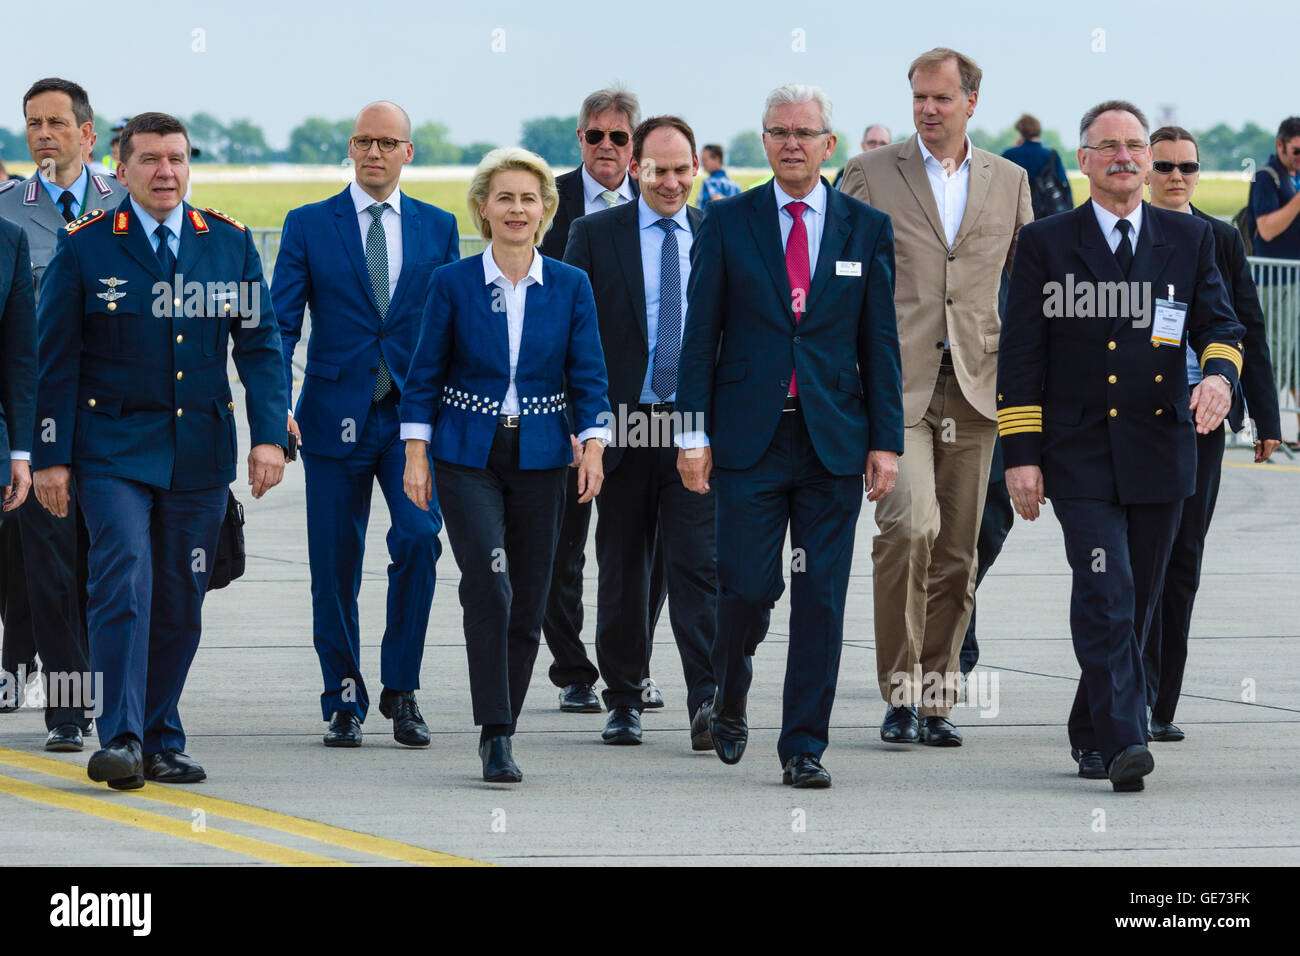 Arrival of the Federal Minister of Defence of Germany, Ursula von der Leyen at the exhibition ILA Berlin Air Show - Stock Image